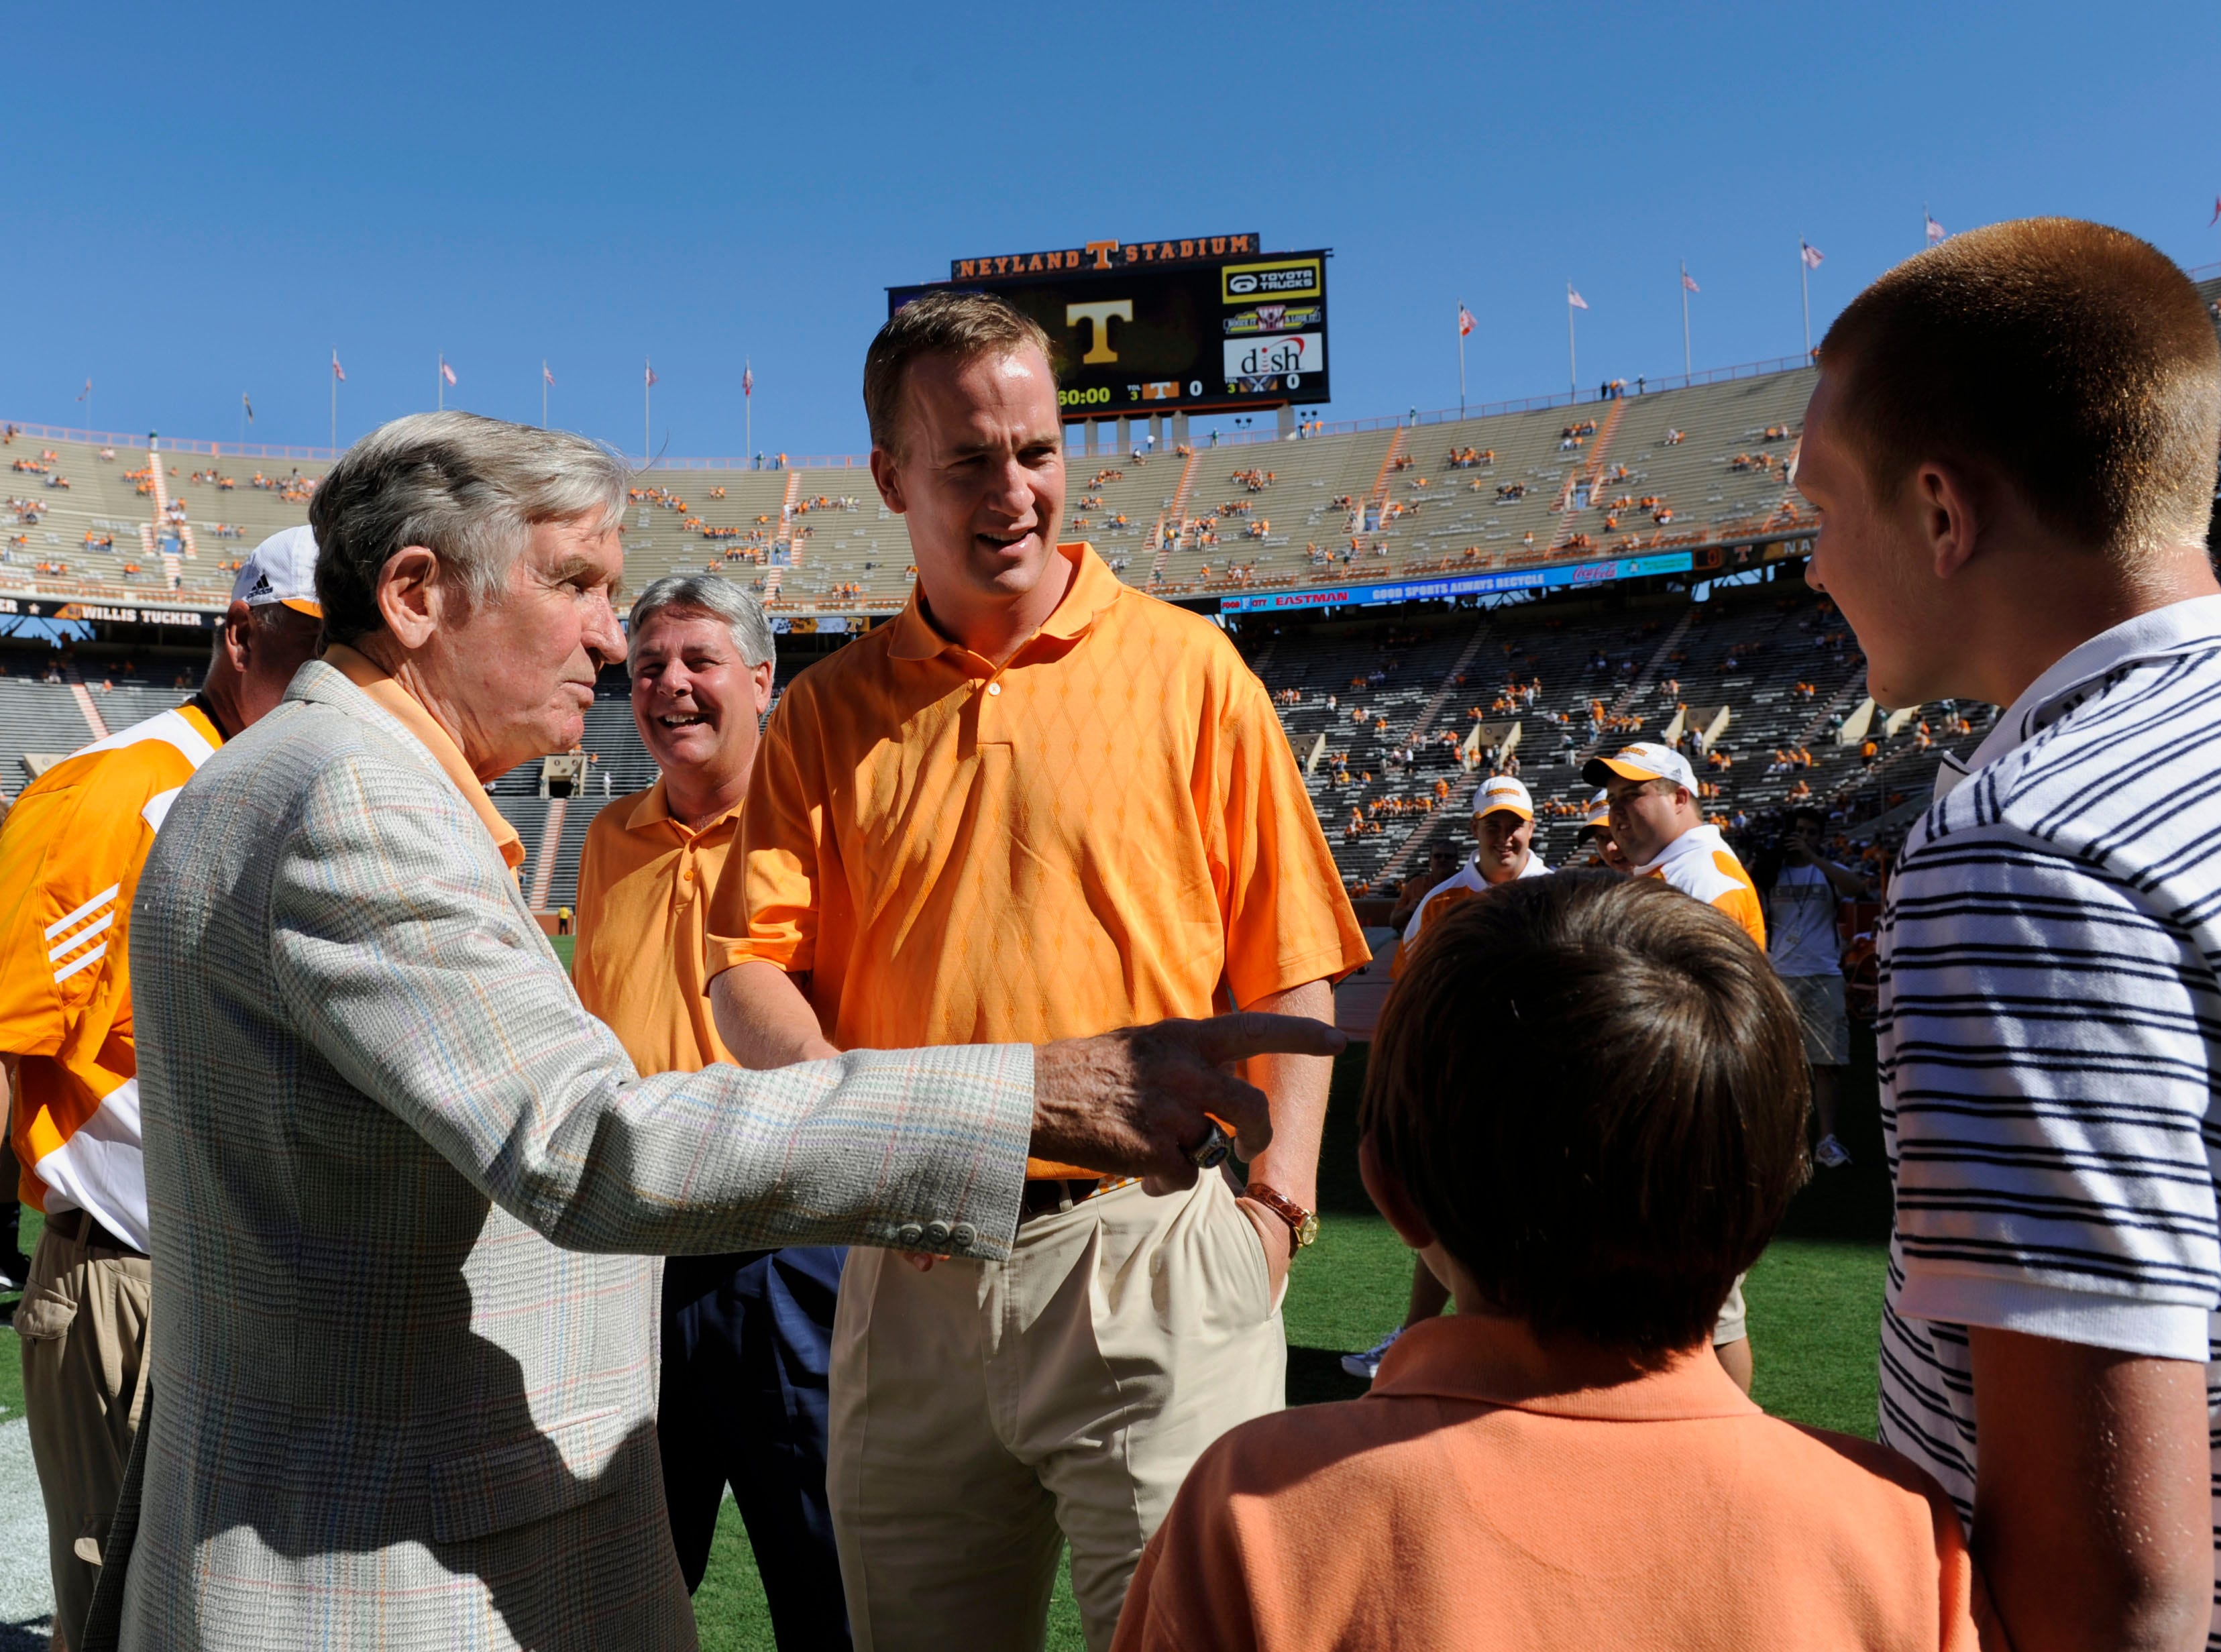 Former Tennessee coach Johnny Majors introduces his grandsons Owen, 10, and Tristan, 14, to Peyton Manning before the start of the UT-Martin game Saturday, Sept. 4, 2010, at Neyland Stadium.